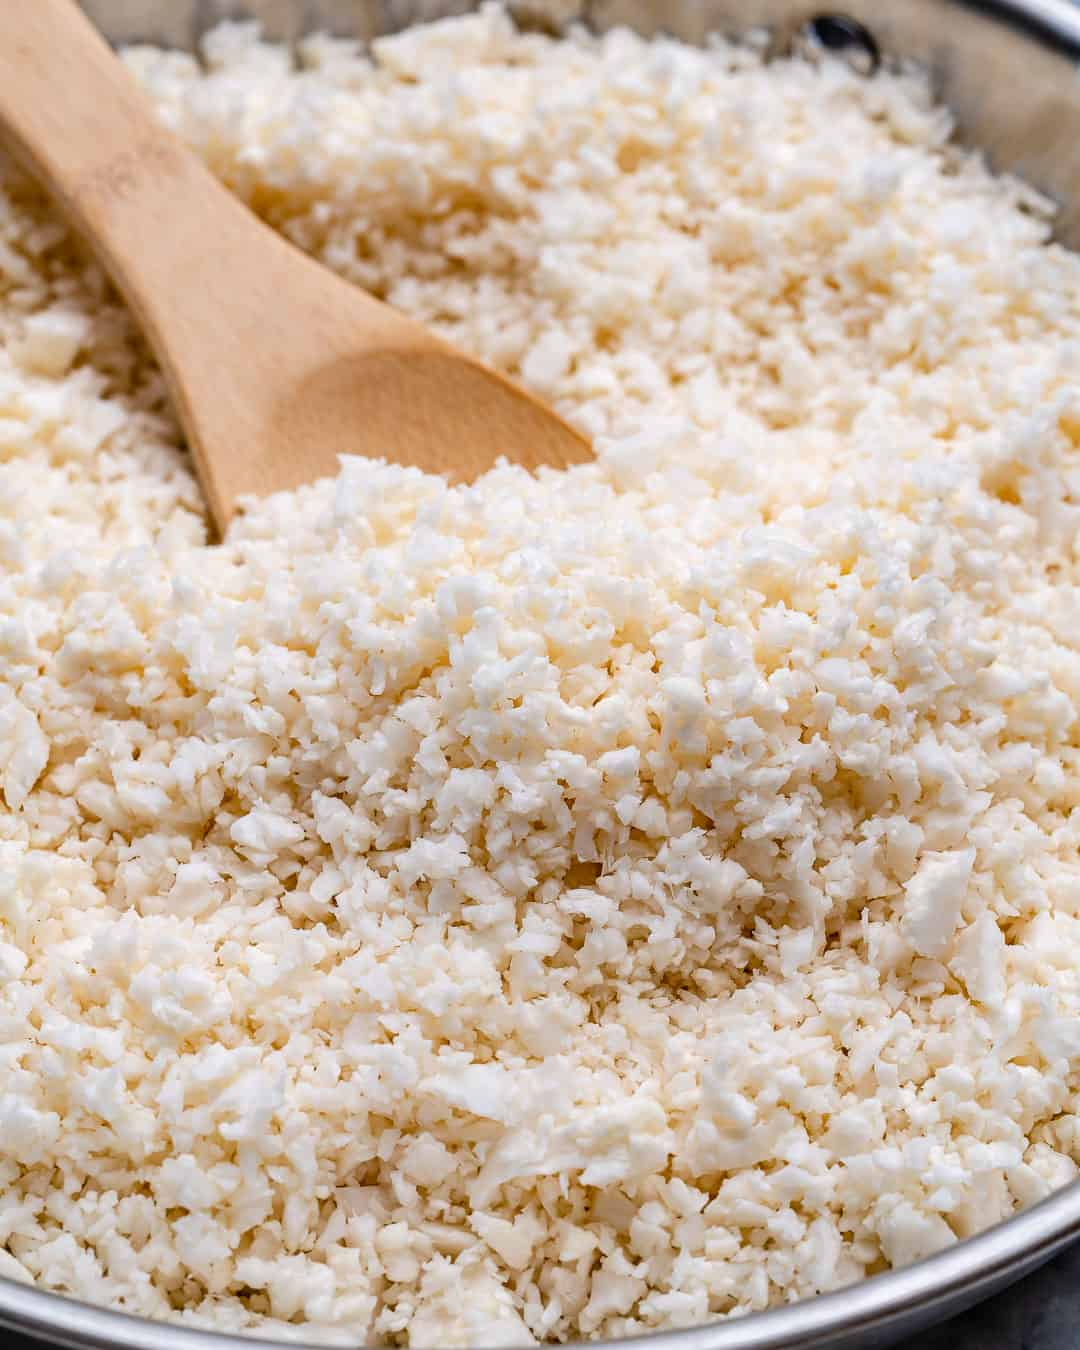 cooking cauliflower rice using a skillet